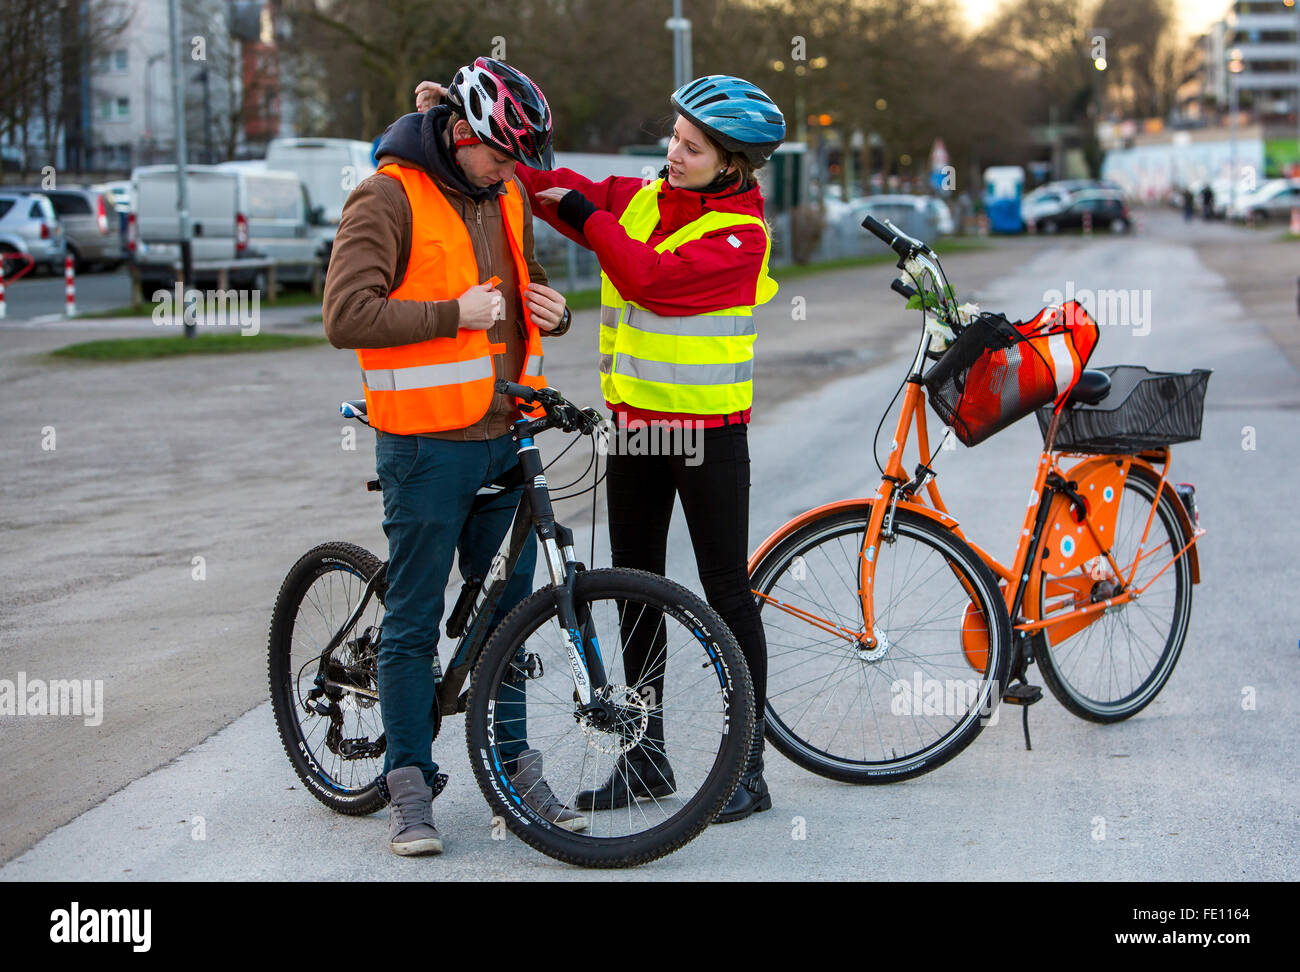 Cyclist Put On Safety Clothing Bike Helmet And Reflecting